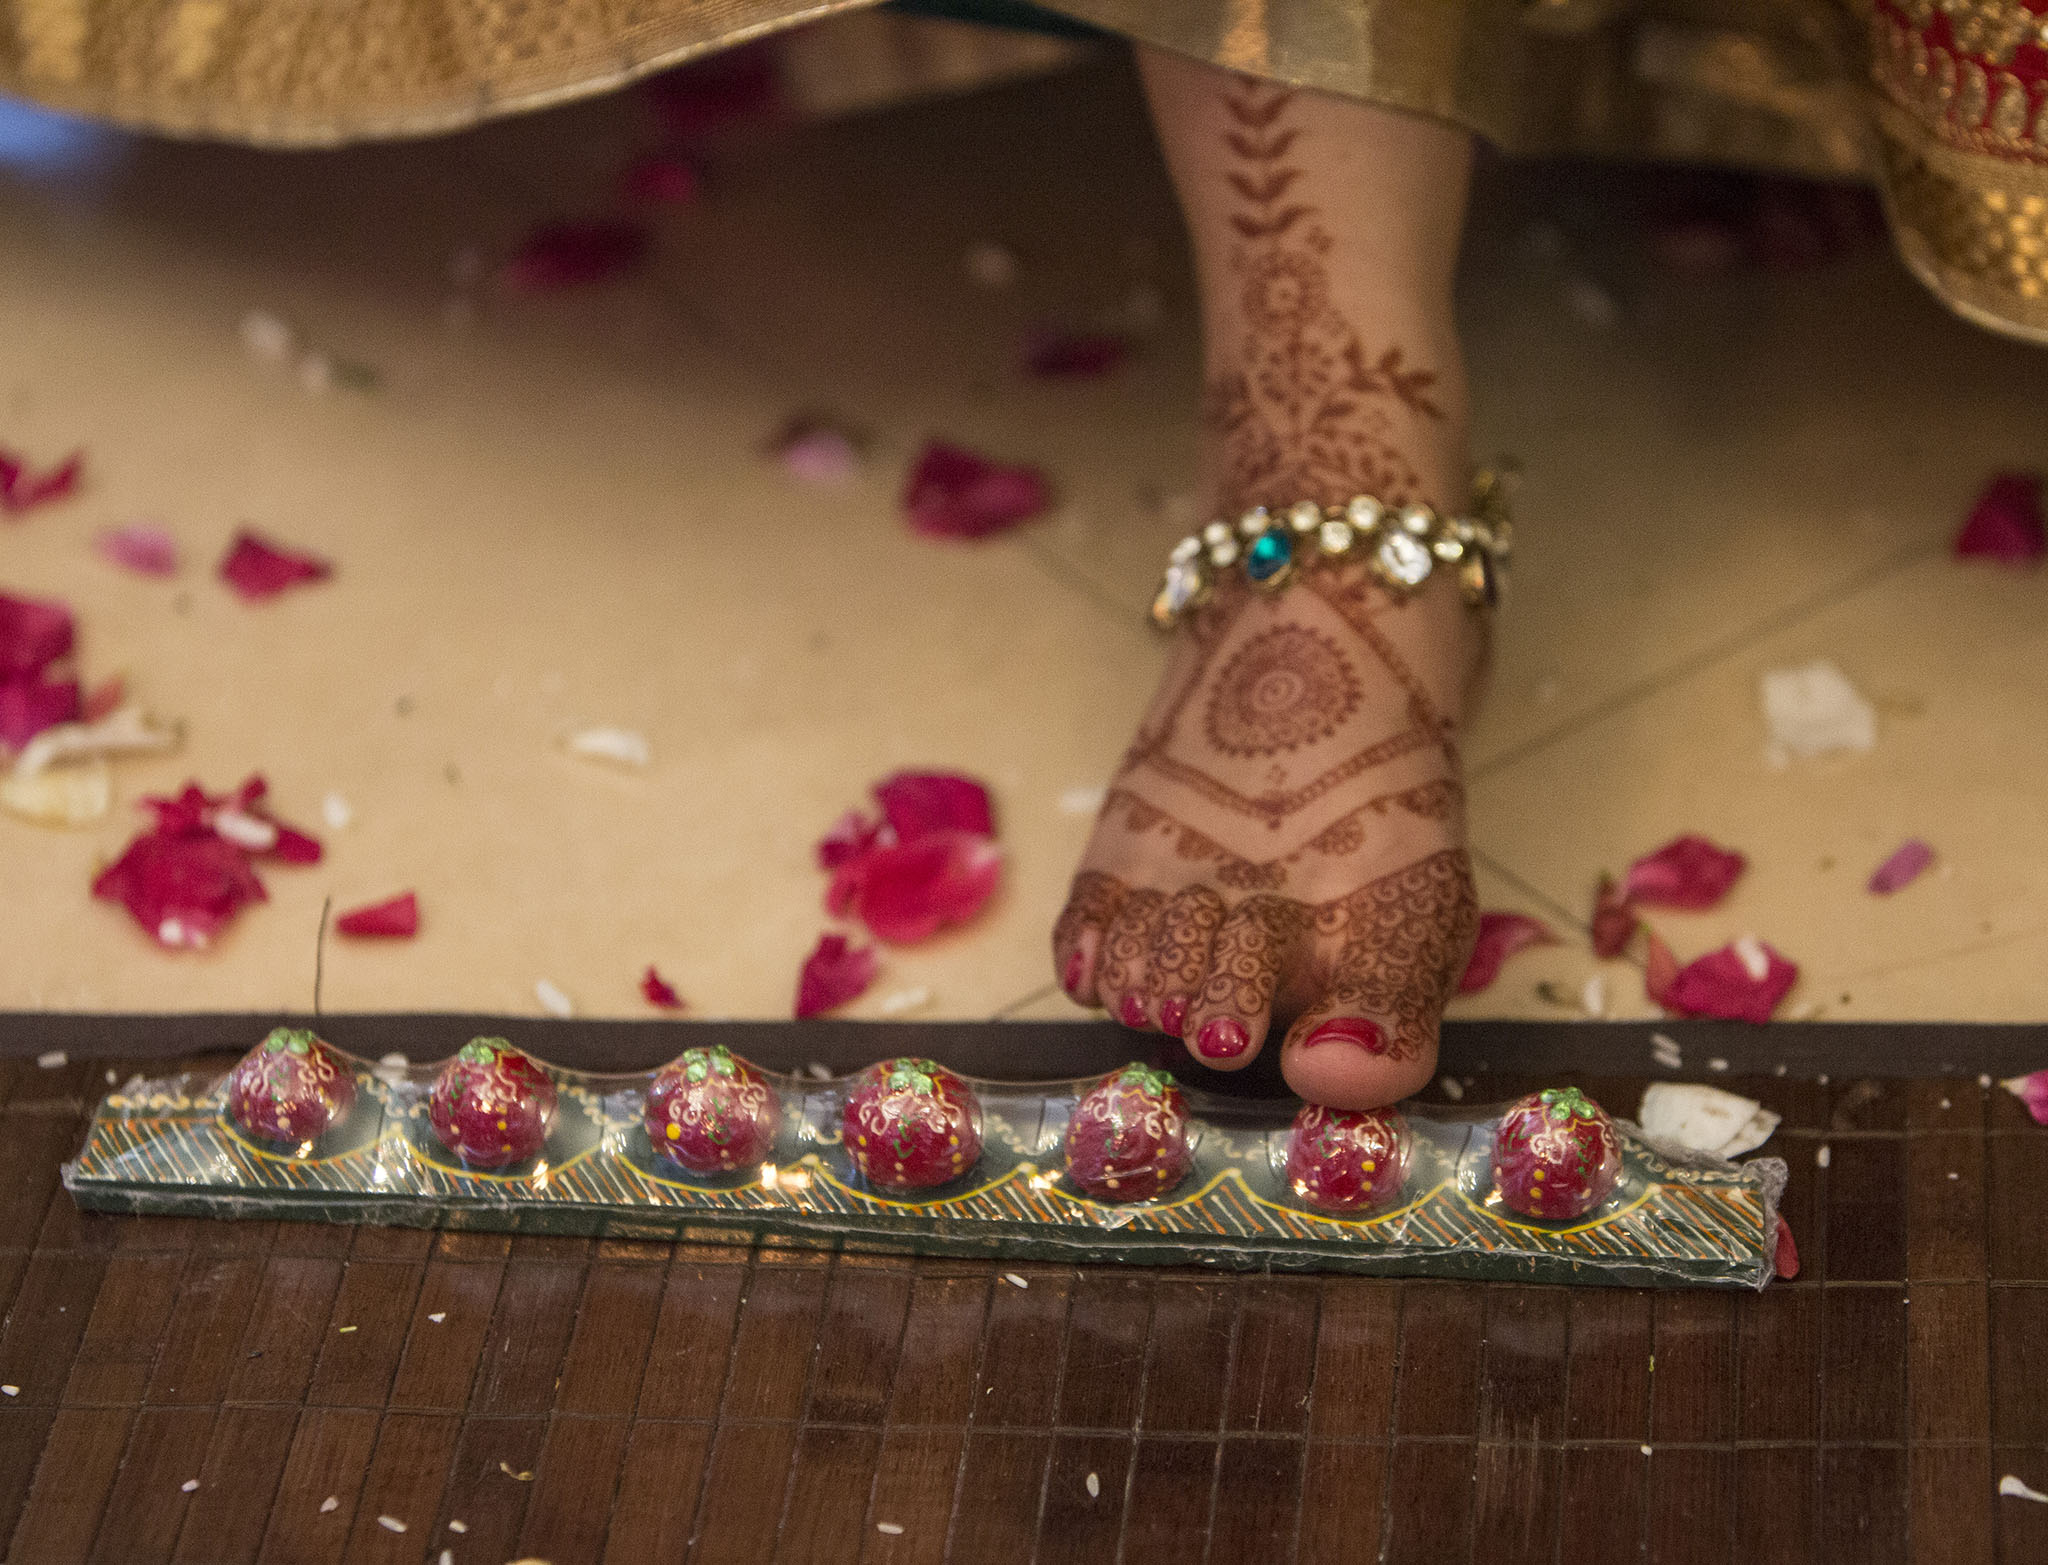 elizabethgphotography_kingslangley_hertfordshire_fineart_indian_wedding_photography_jigna_bhuja_bhaktivedanta_manor_watford_03.jpg